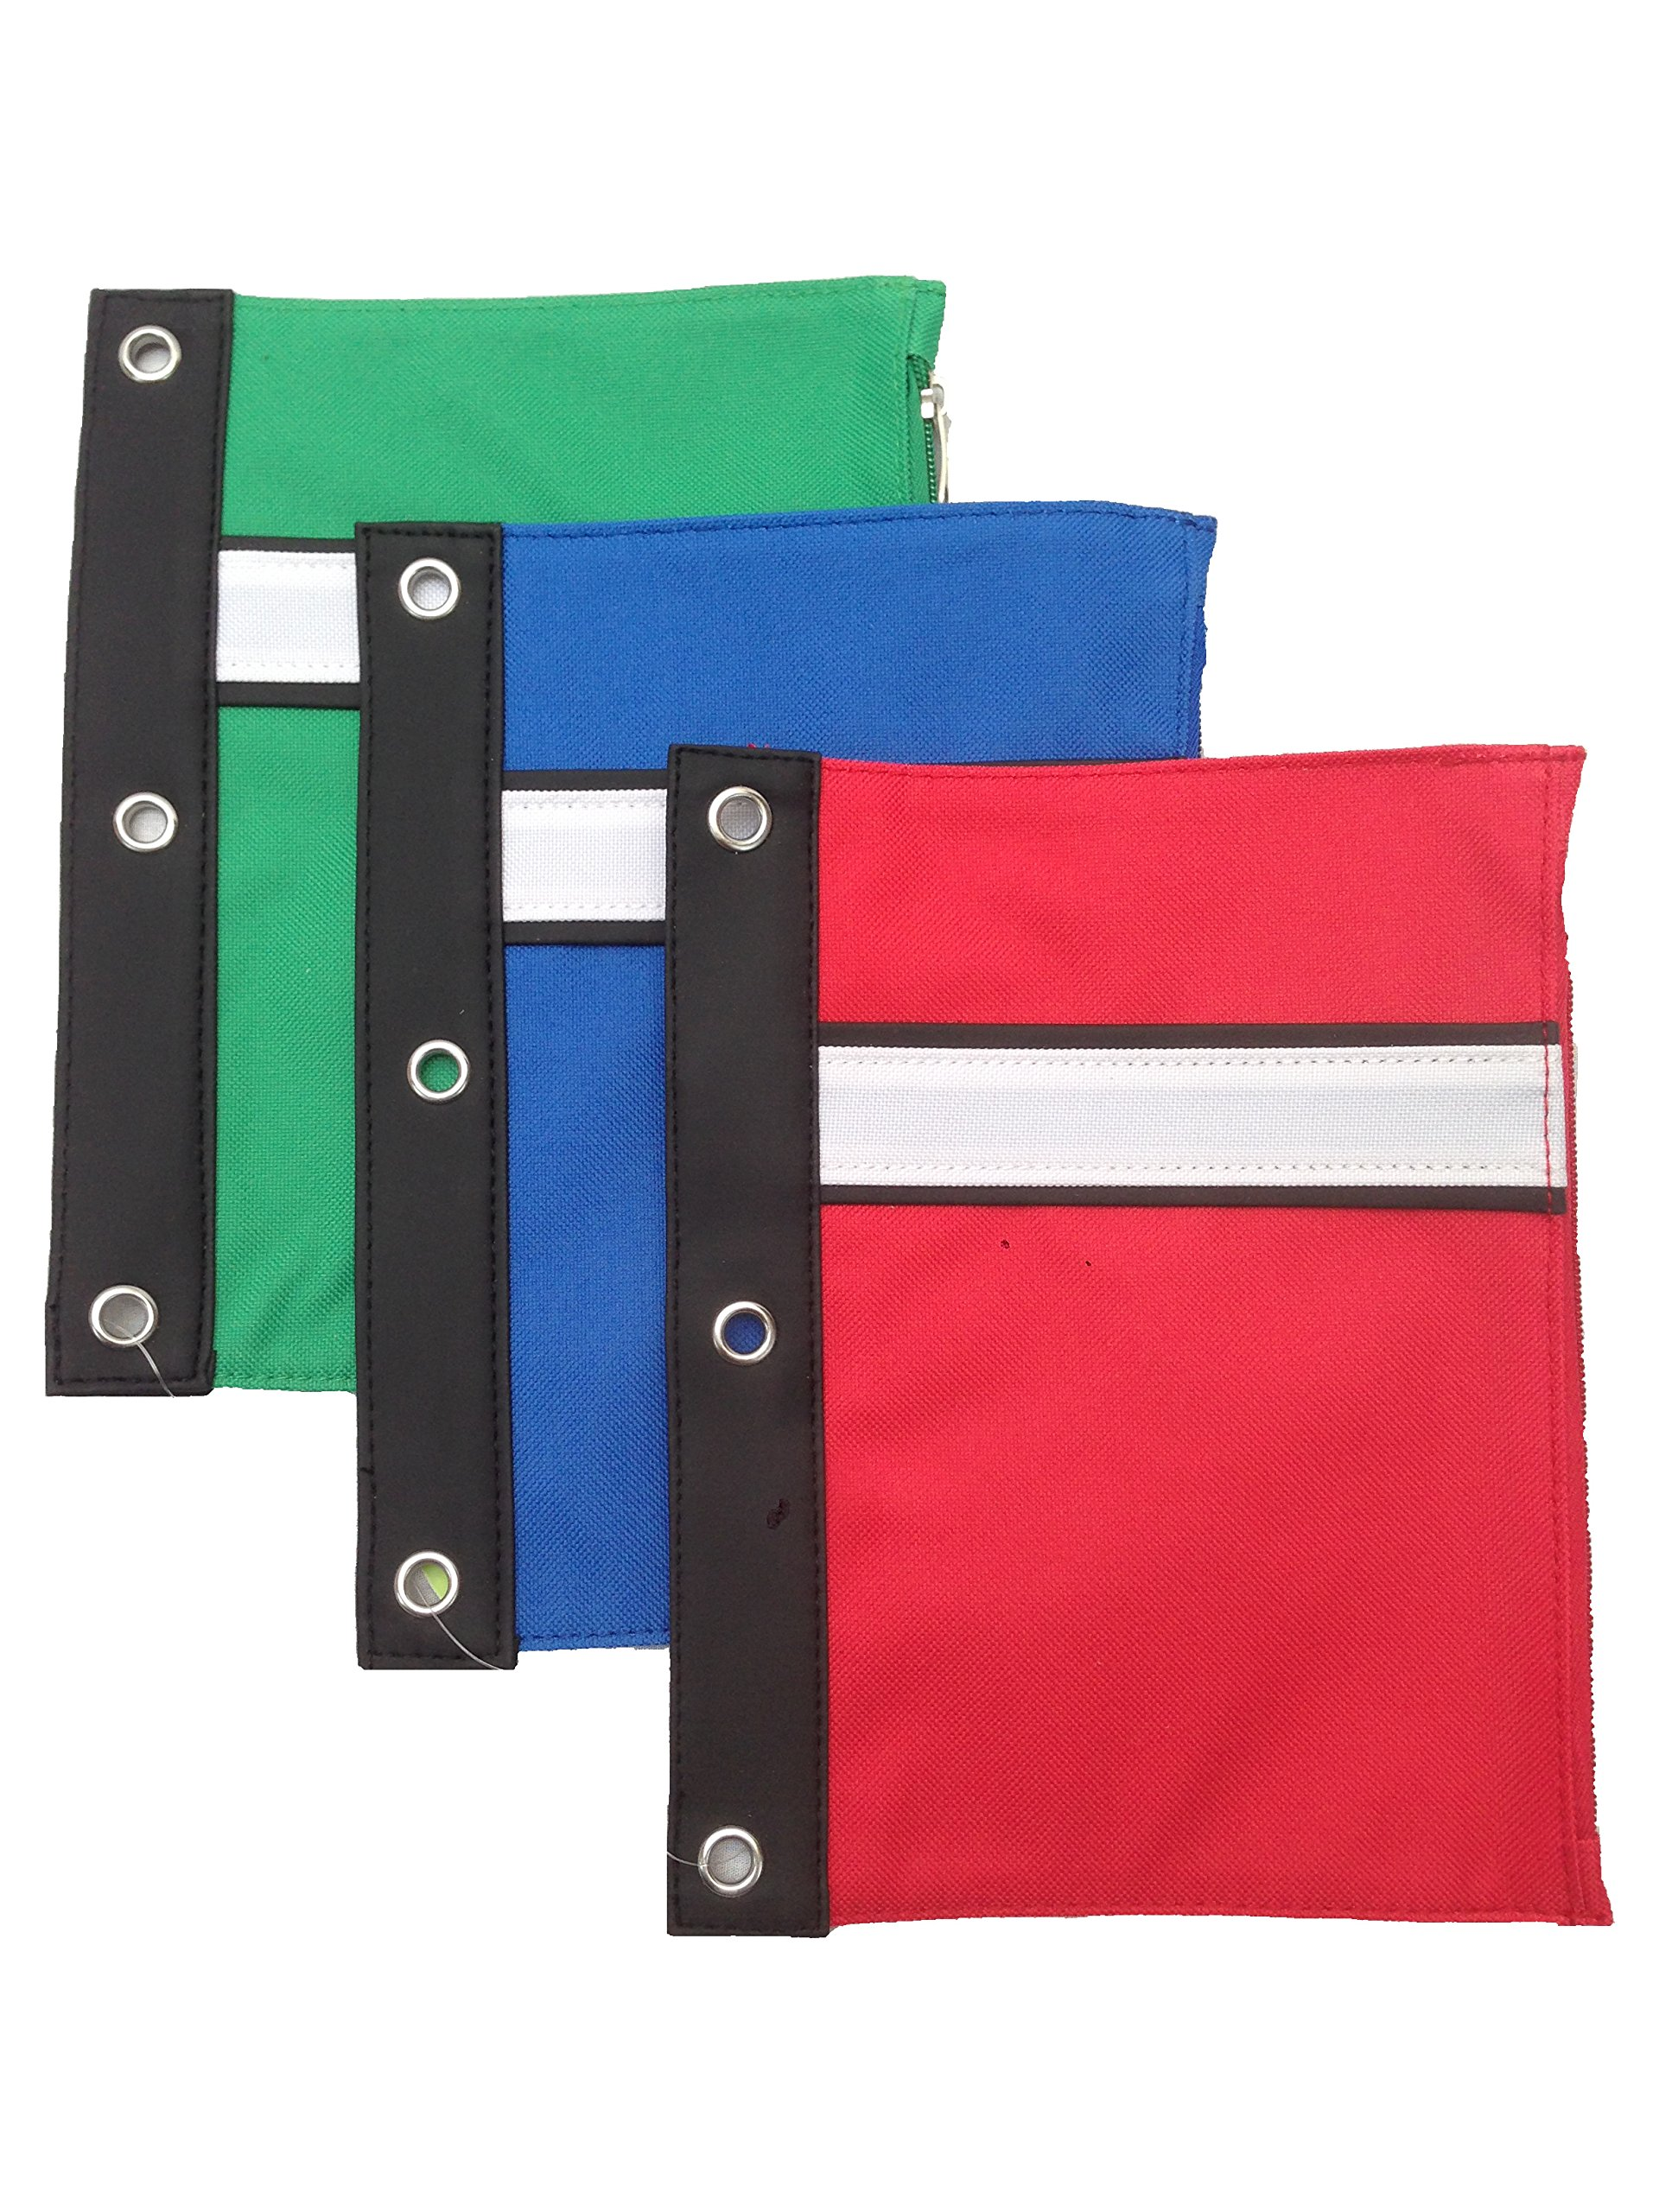 Large 3-Ring Binder Pen Pouch with Soft Vinyl Binding for Office or School Use - Assorted Colors (Blue Red Black Green) (12 Pack)